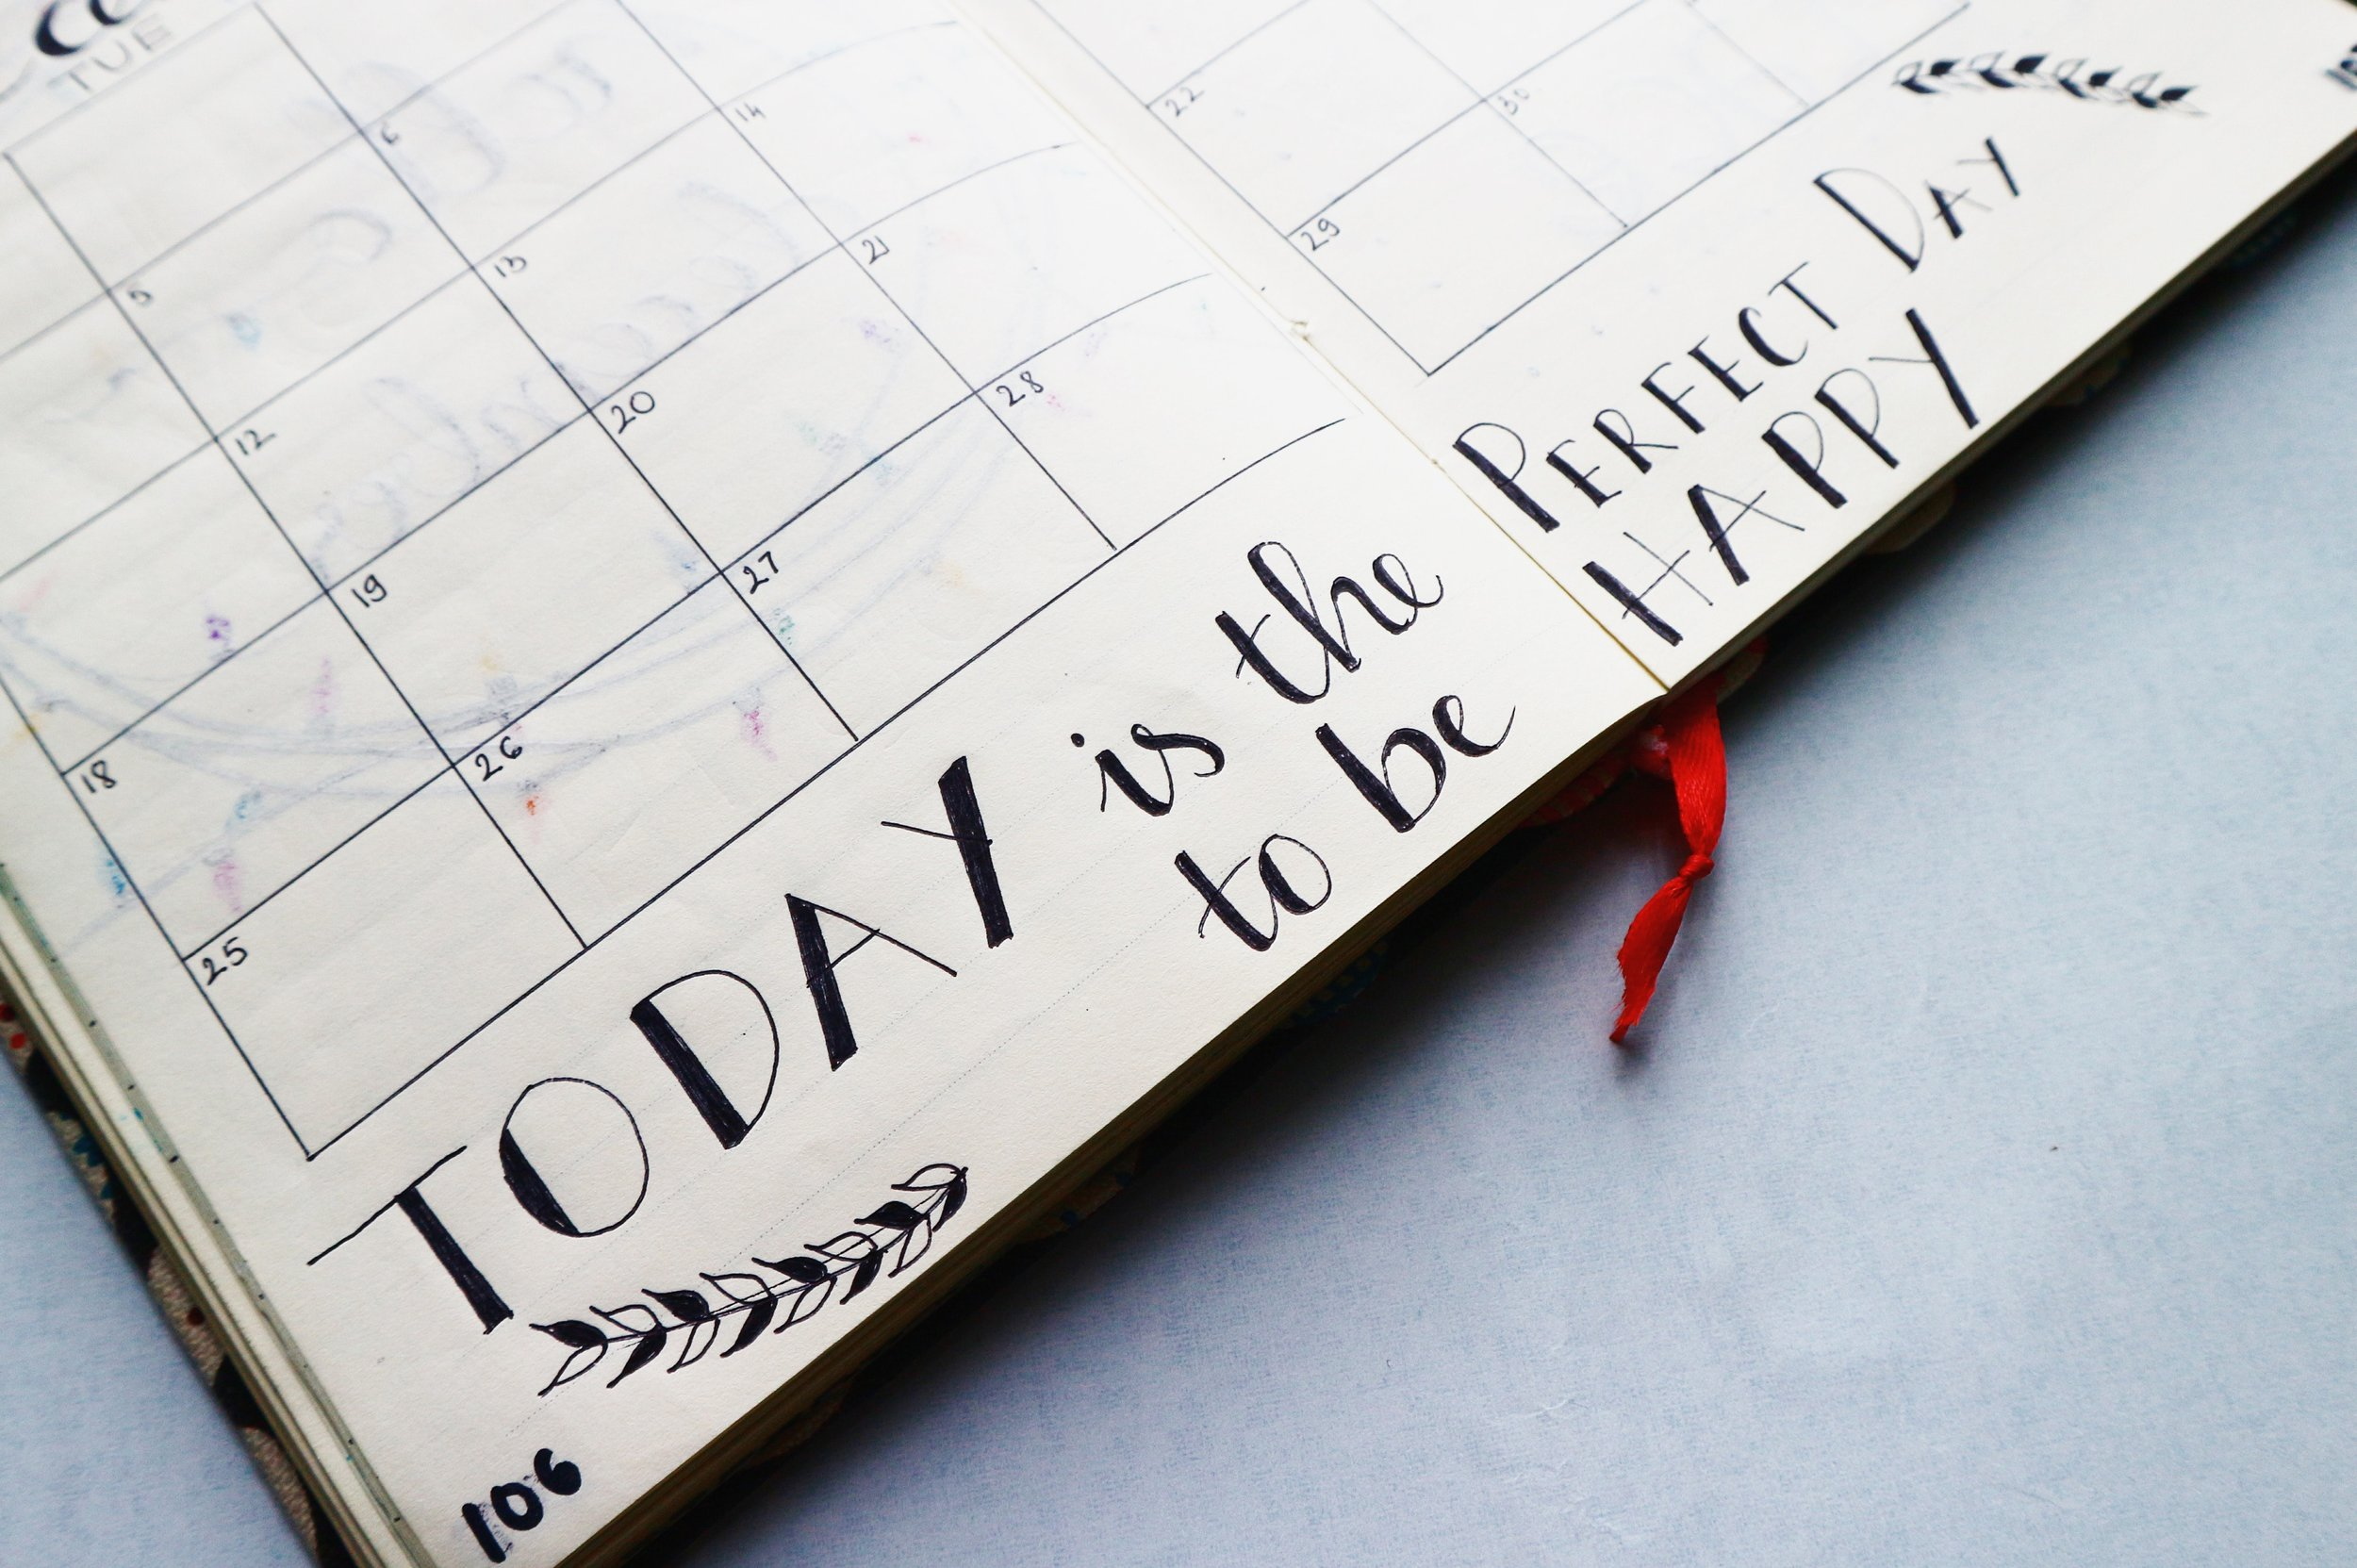 Spending one hour a week scheduling content makes sure your goals are being met when it comes to social media marketing